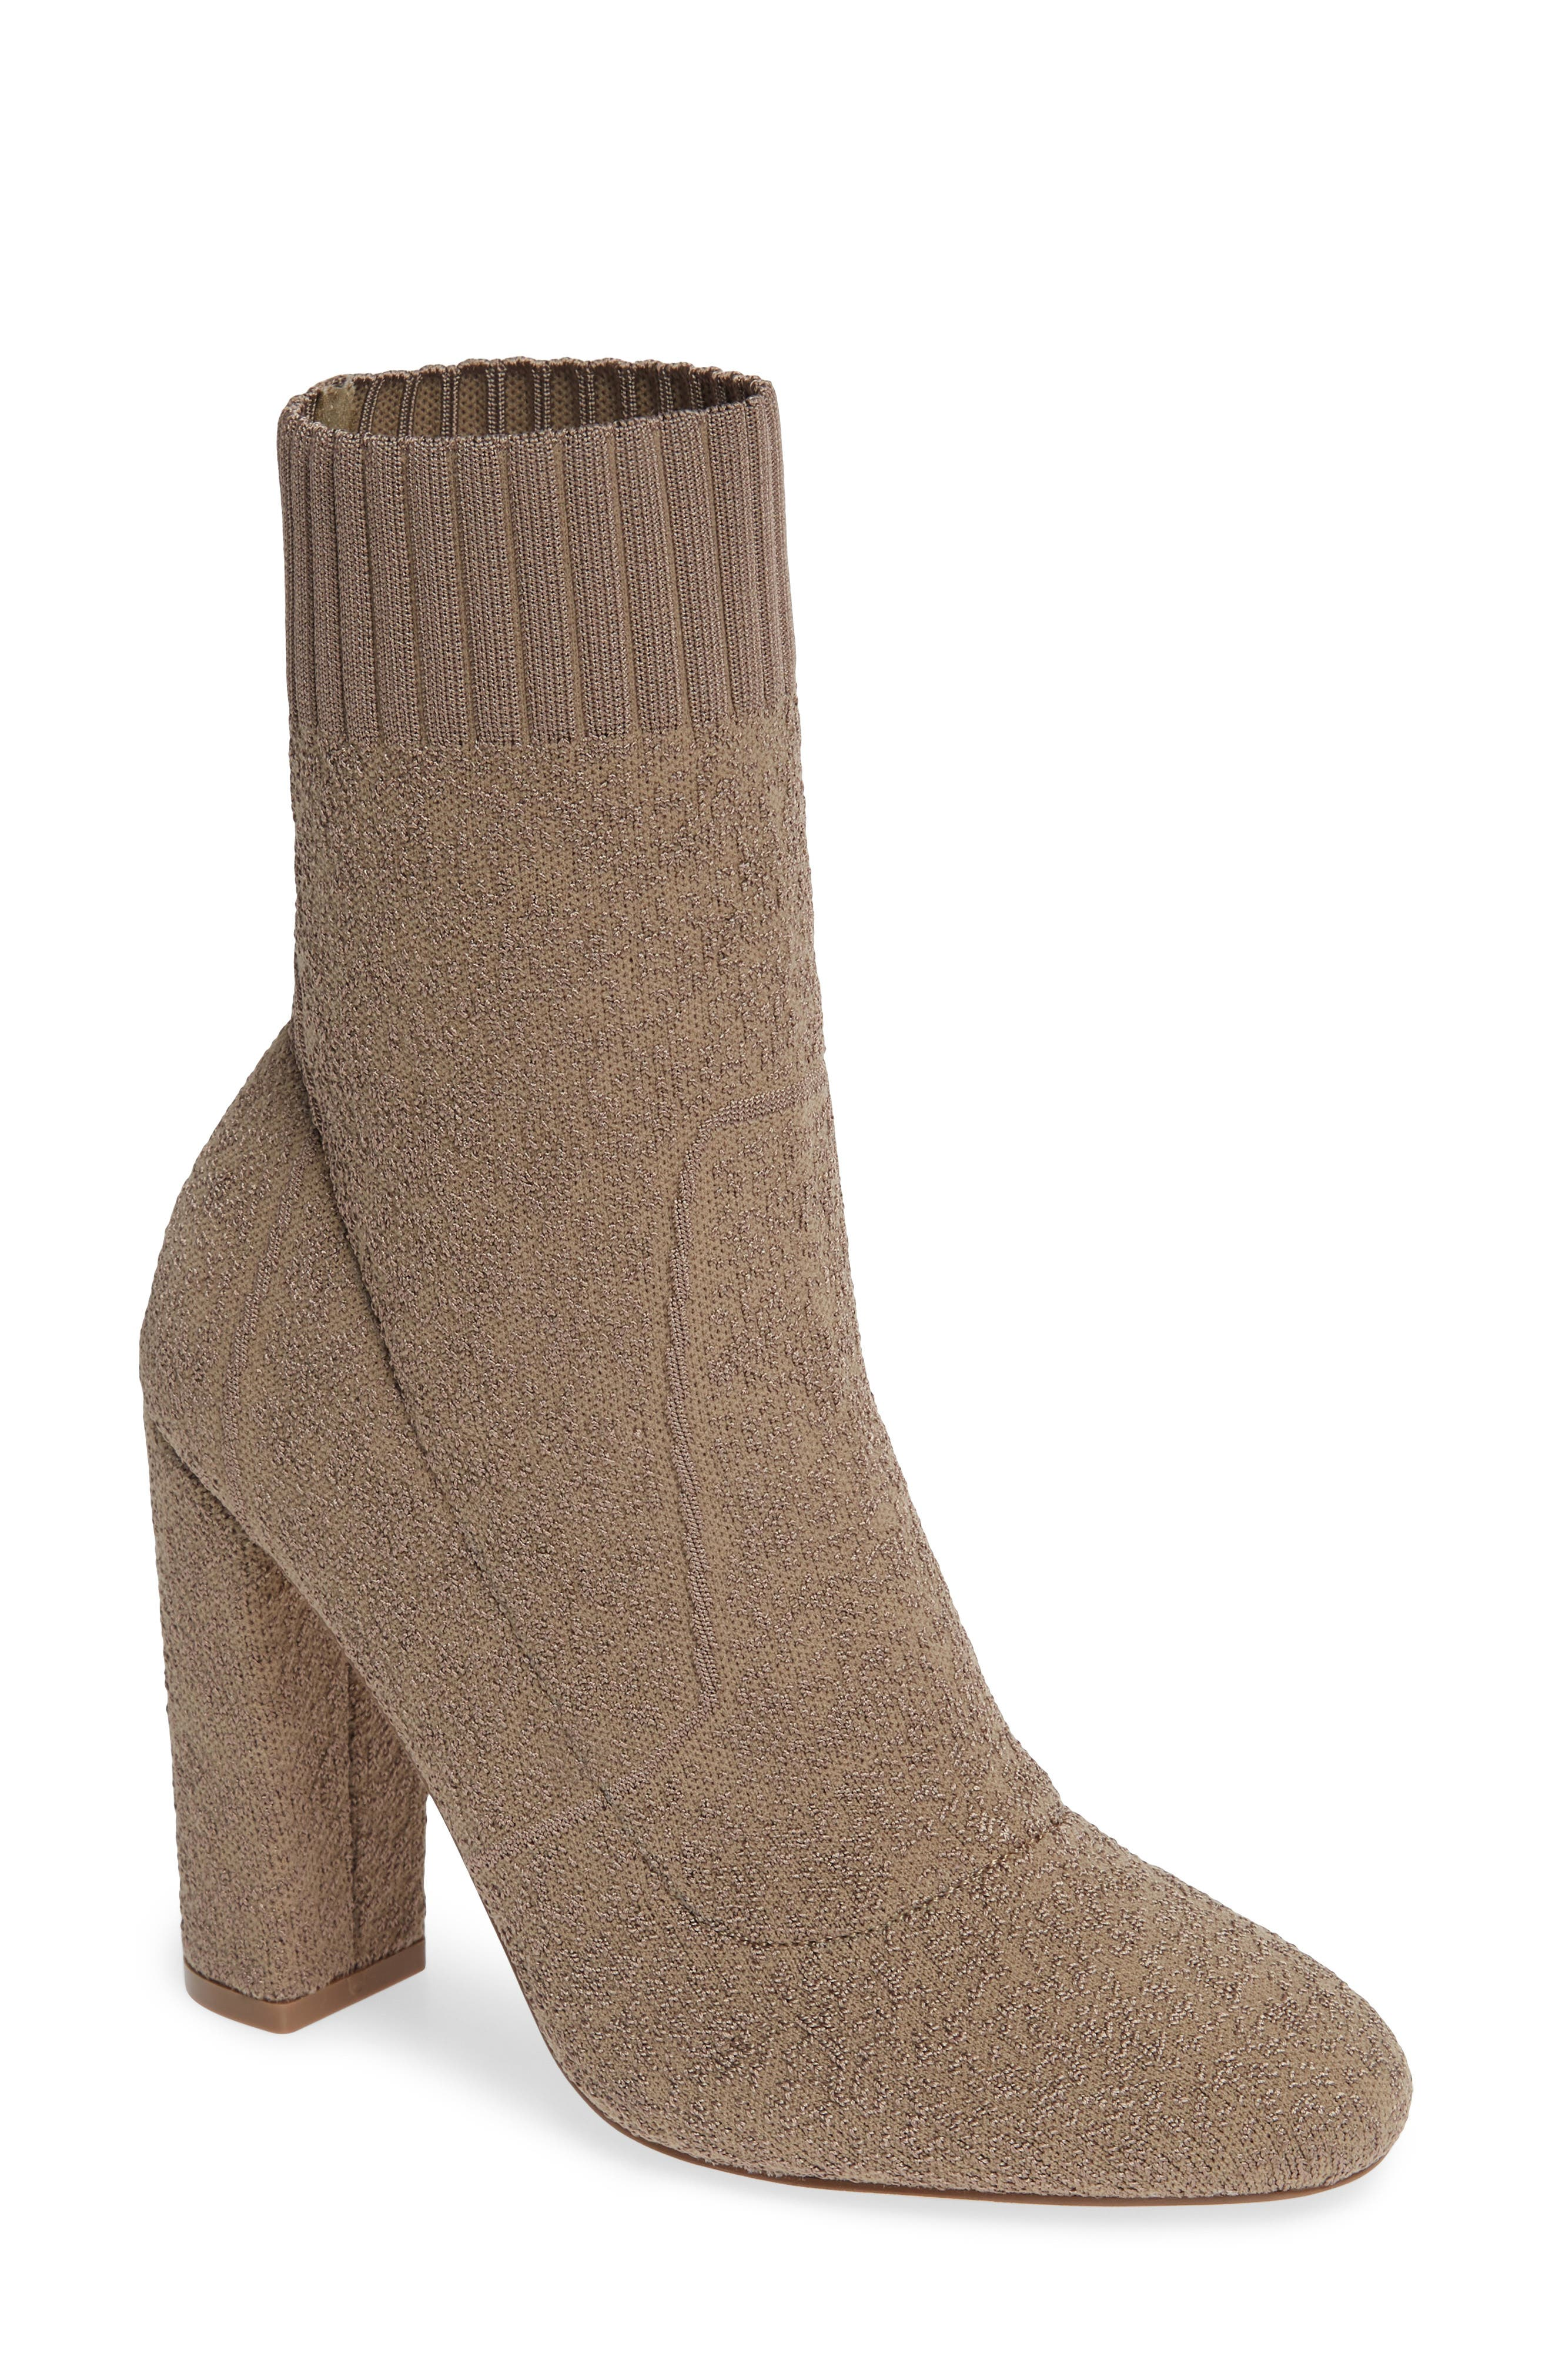 Iceland Bootie,                         Main,                         color, 250